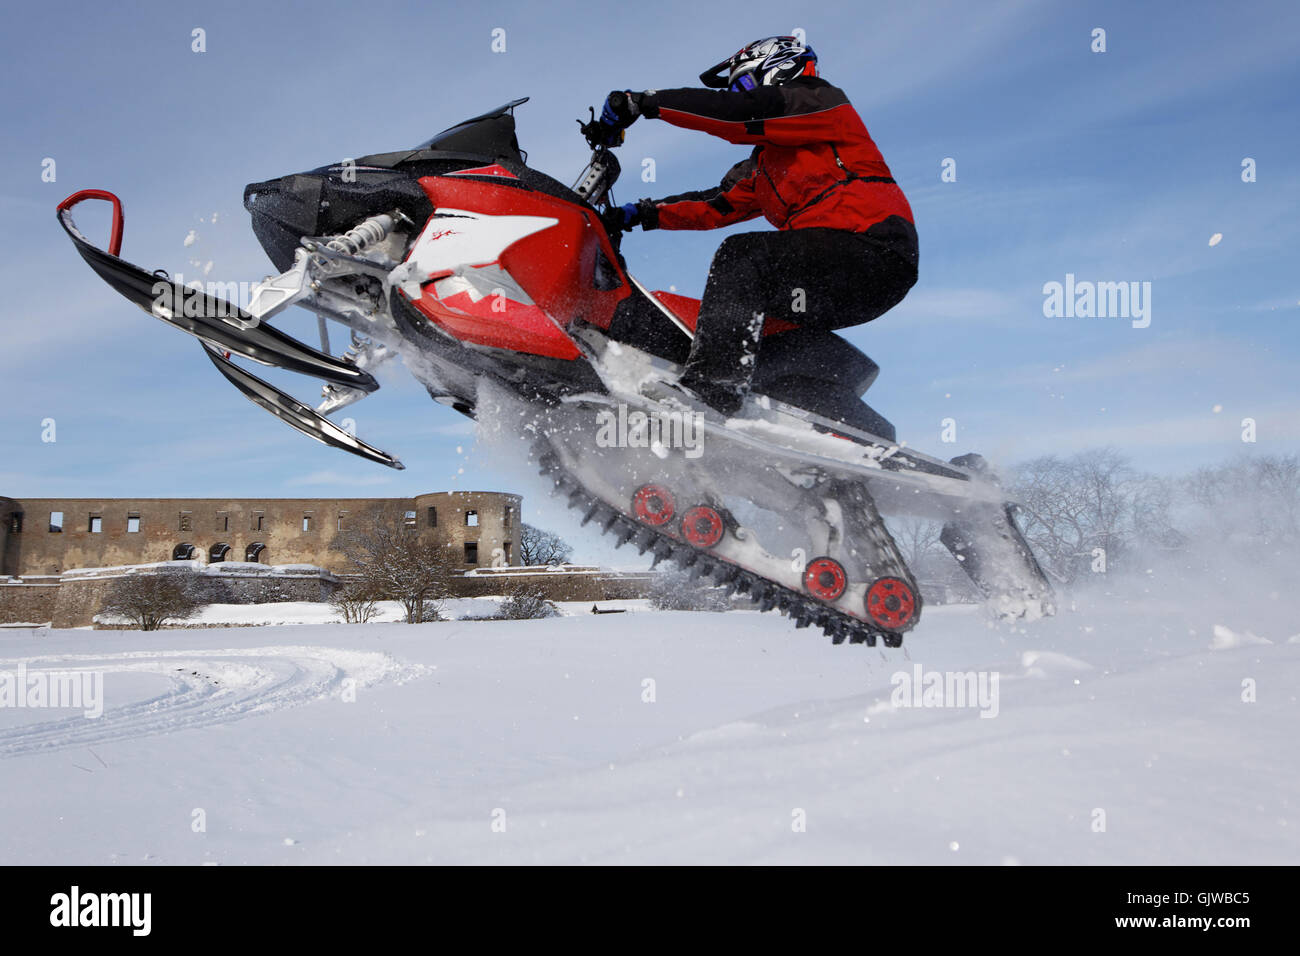 snowmobile in jump - Stock Image